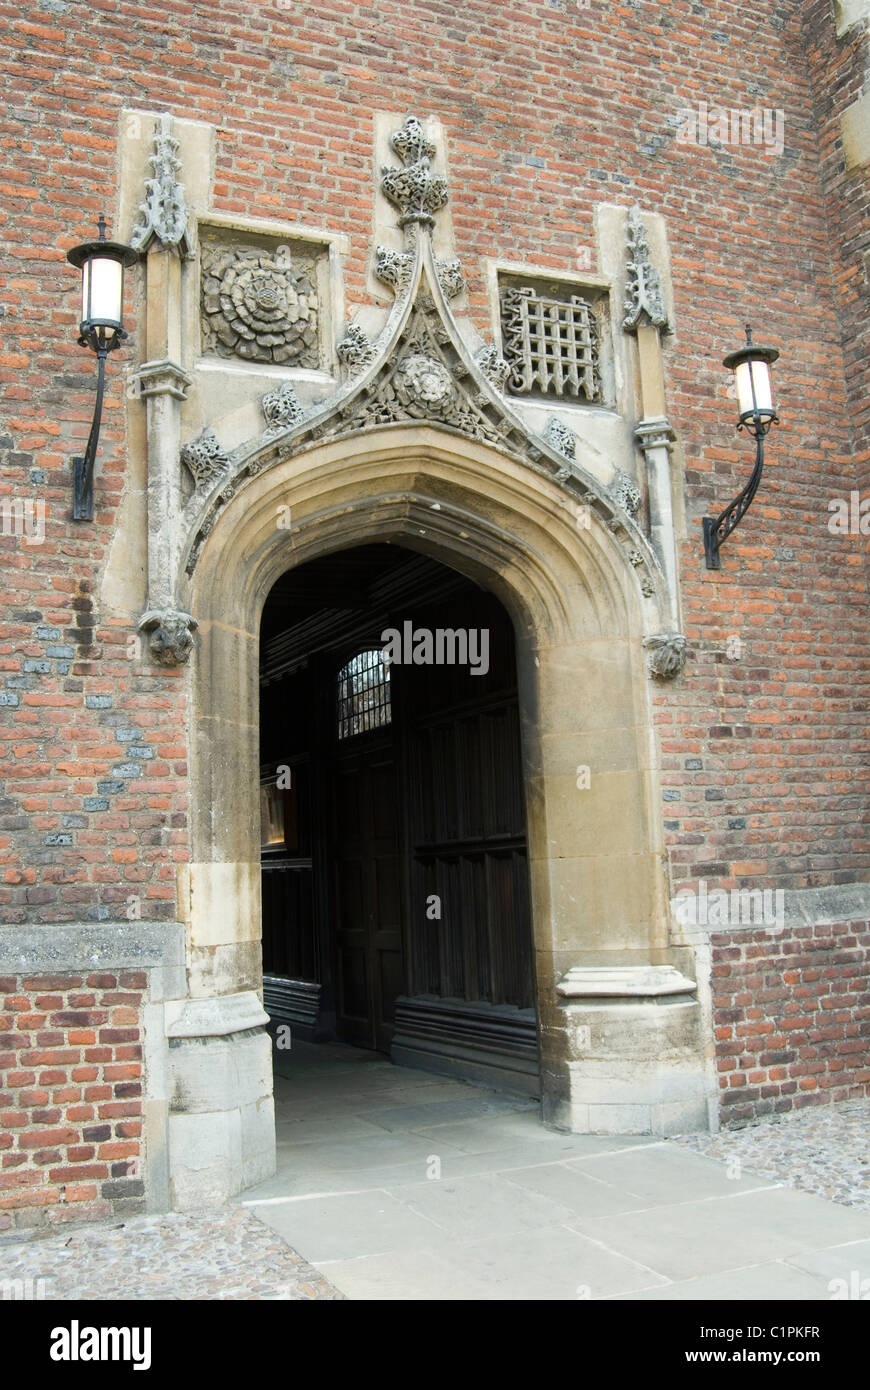 England, Cambridge, St. John's College, Chapel entrance - Stock Image